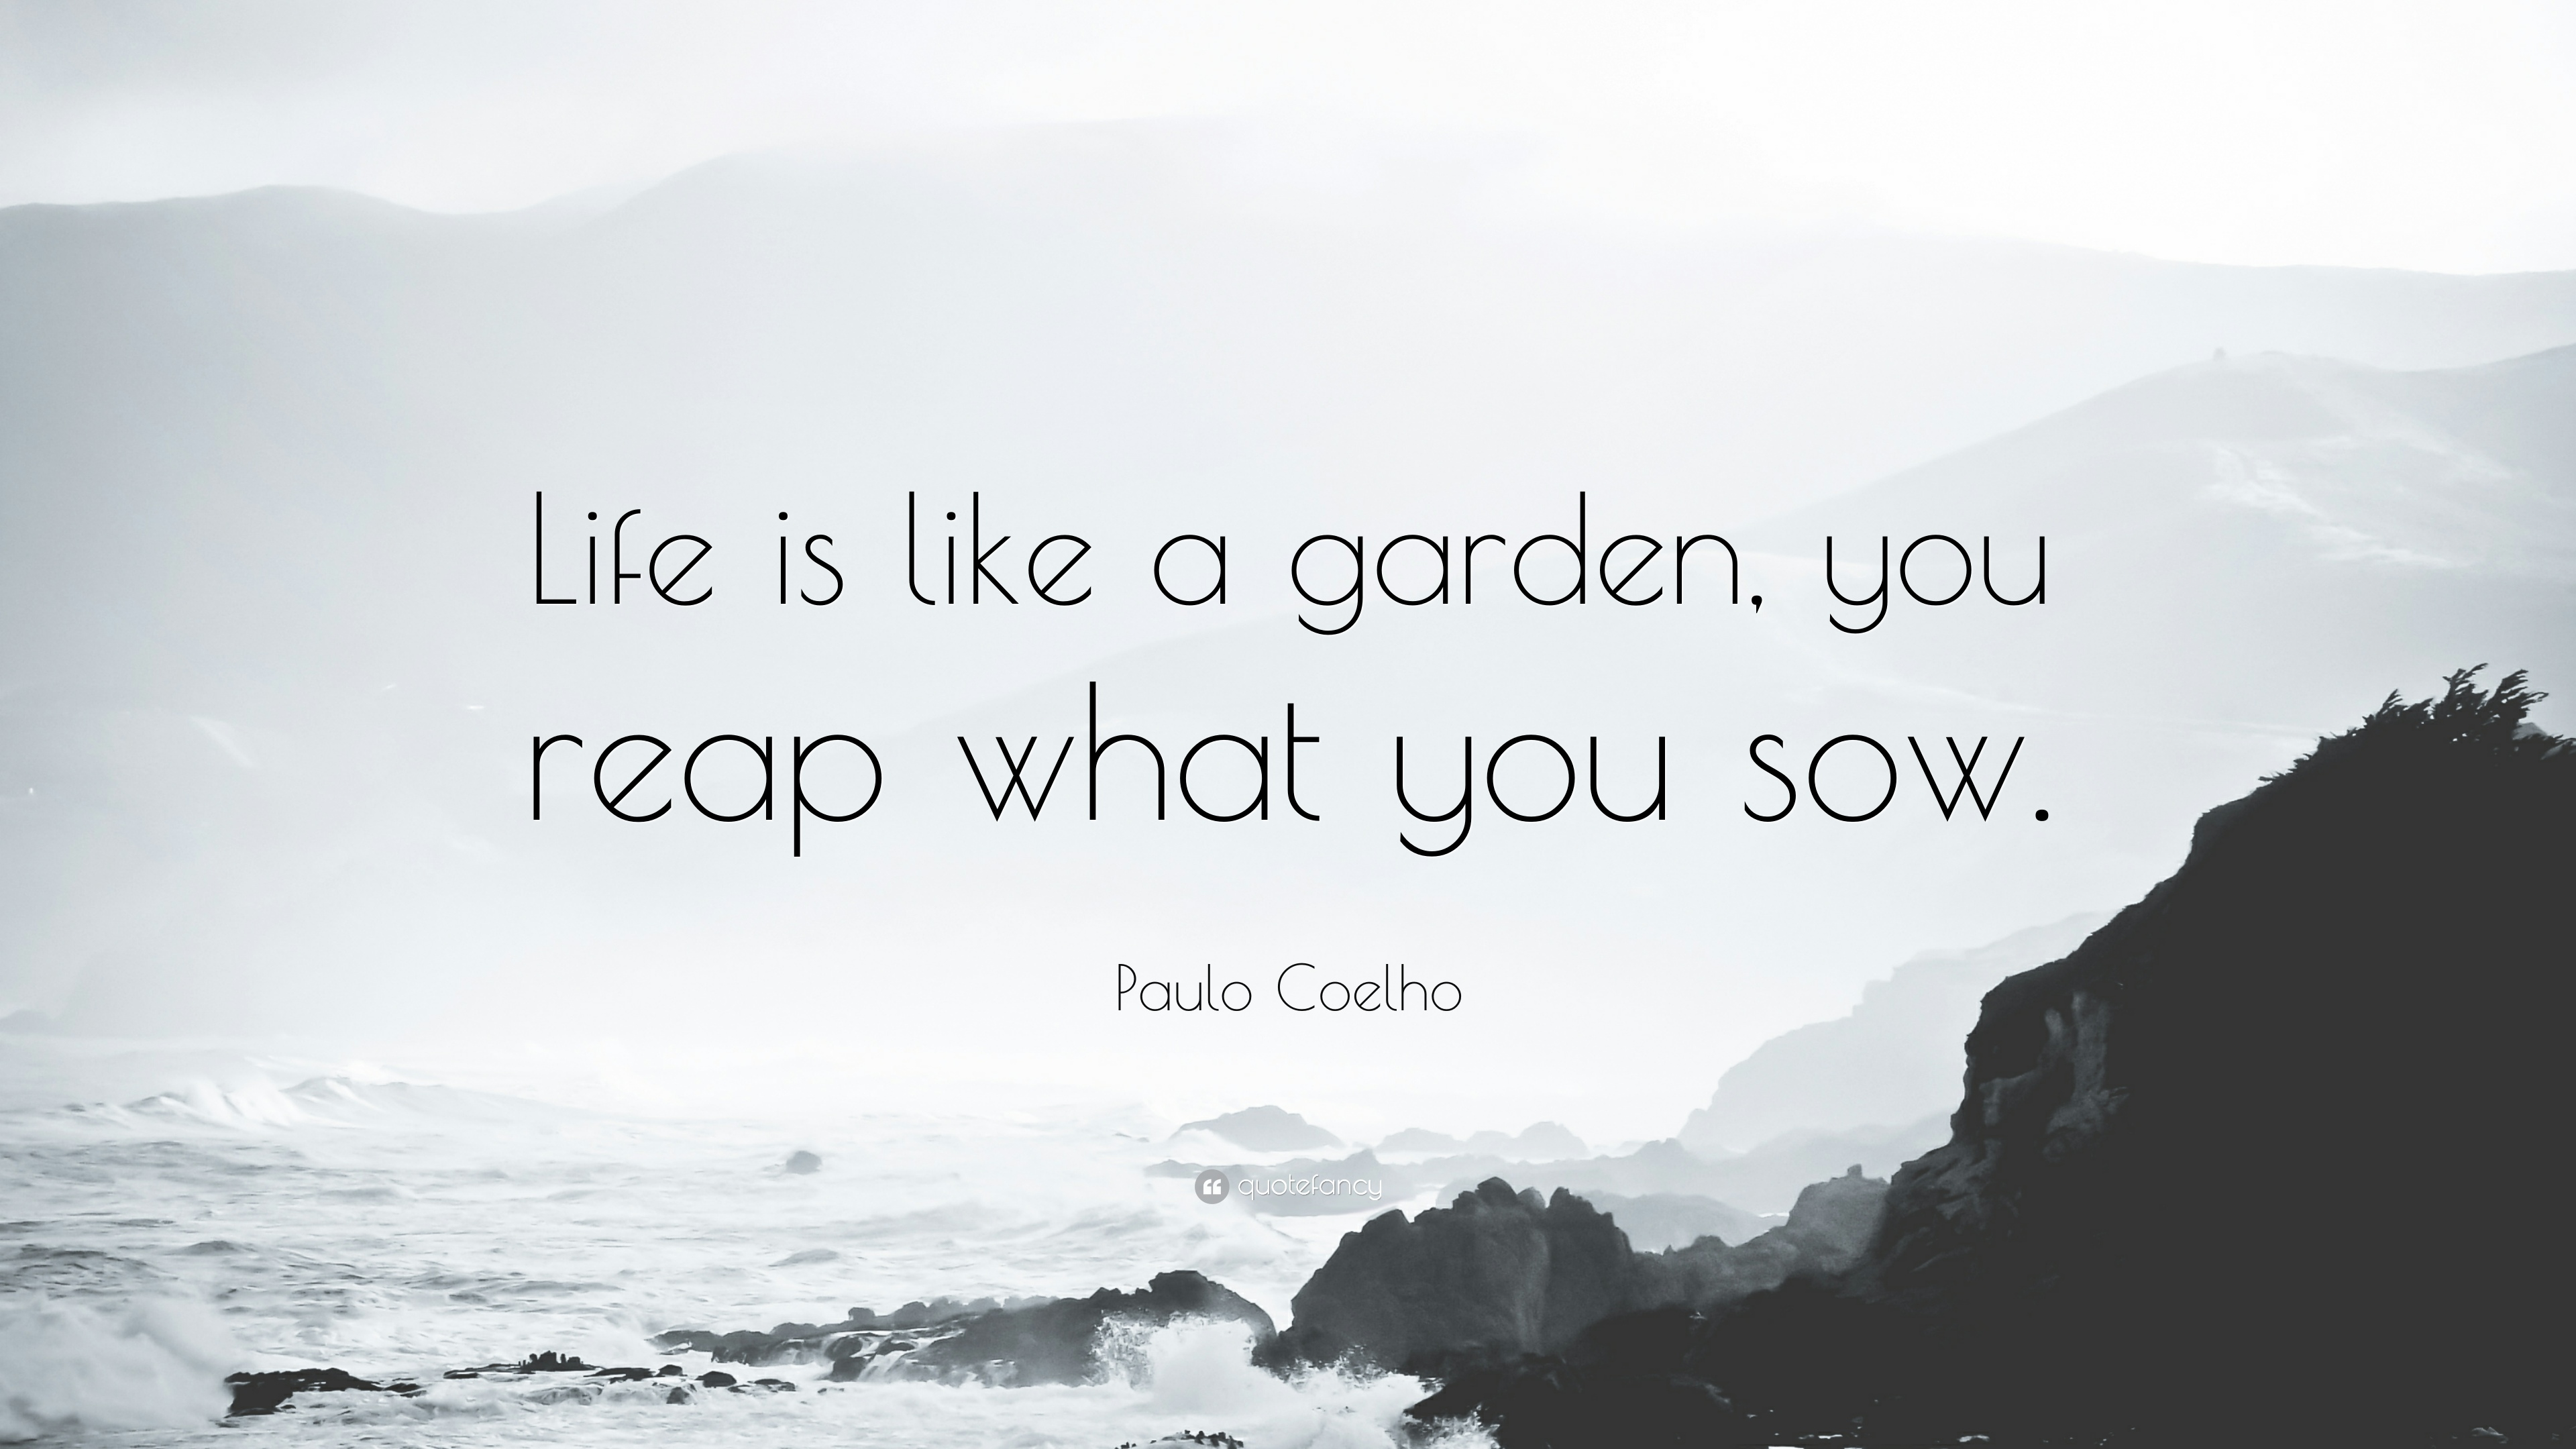 Paulo Coelho Quote Life Is Like A Garden You Reap What You Sow